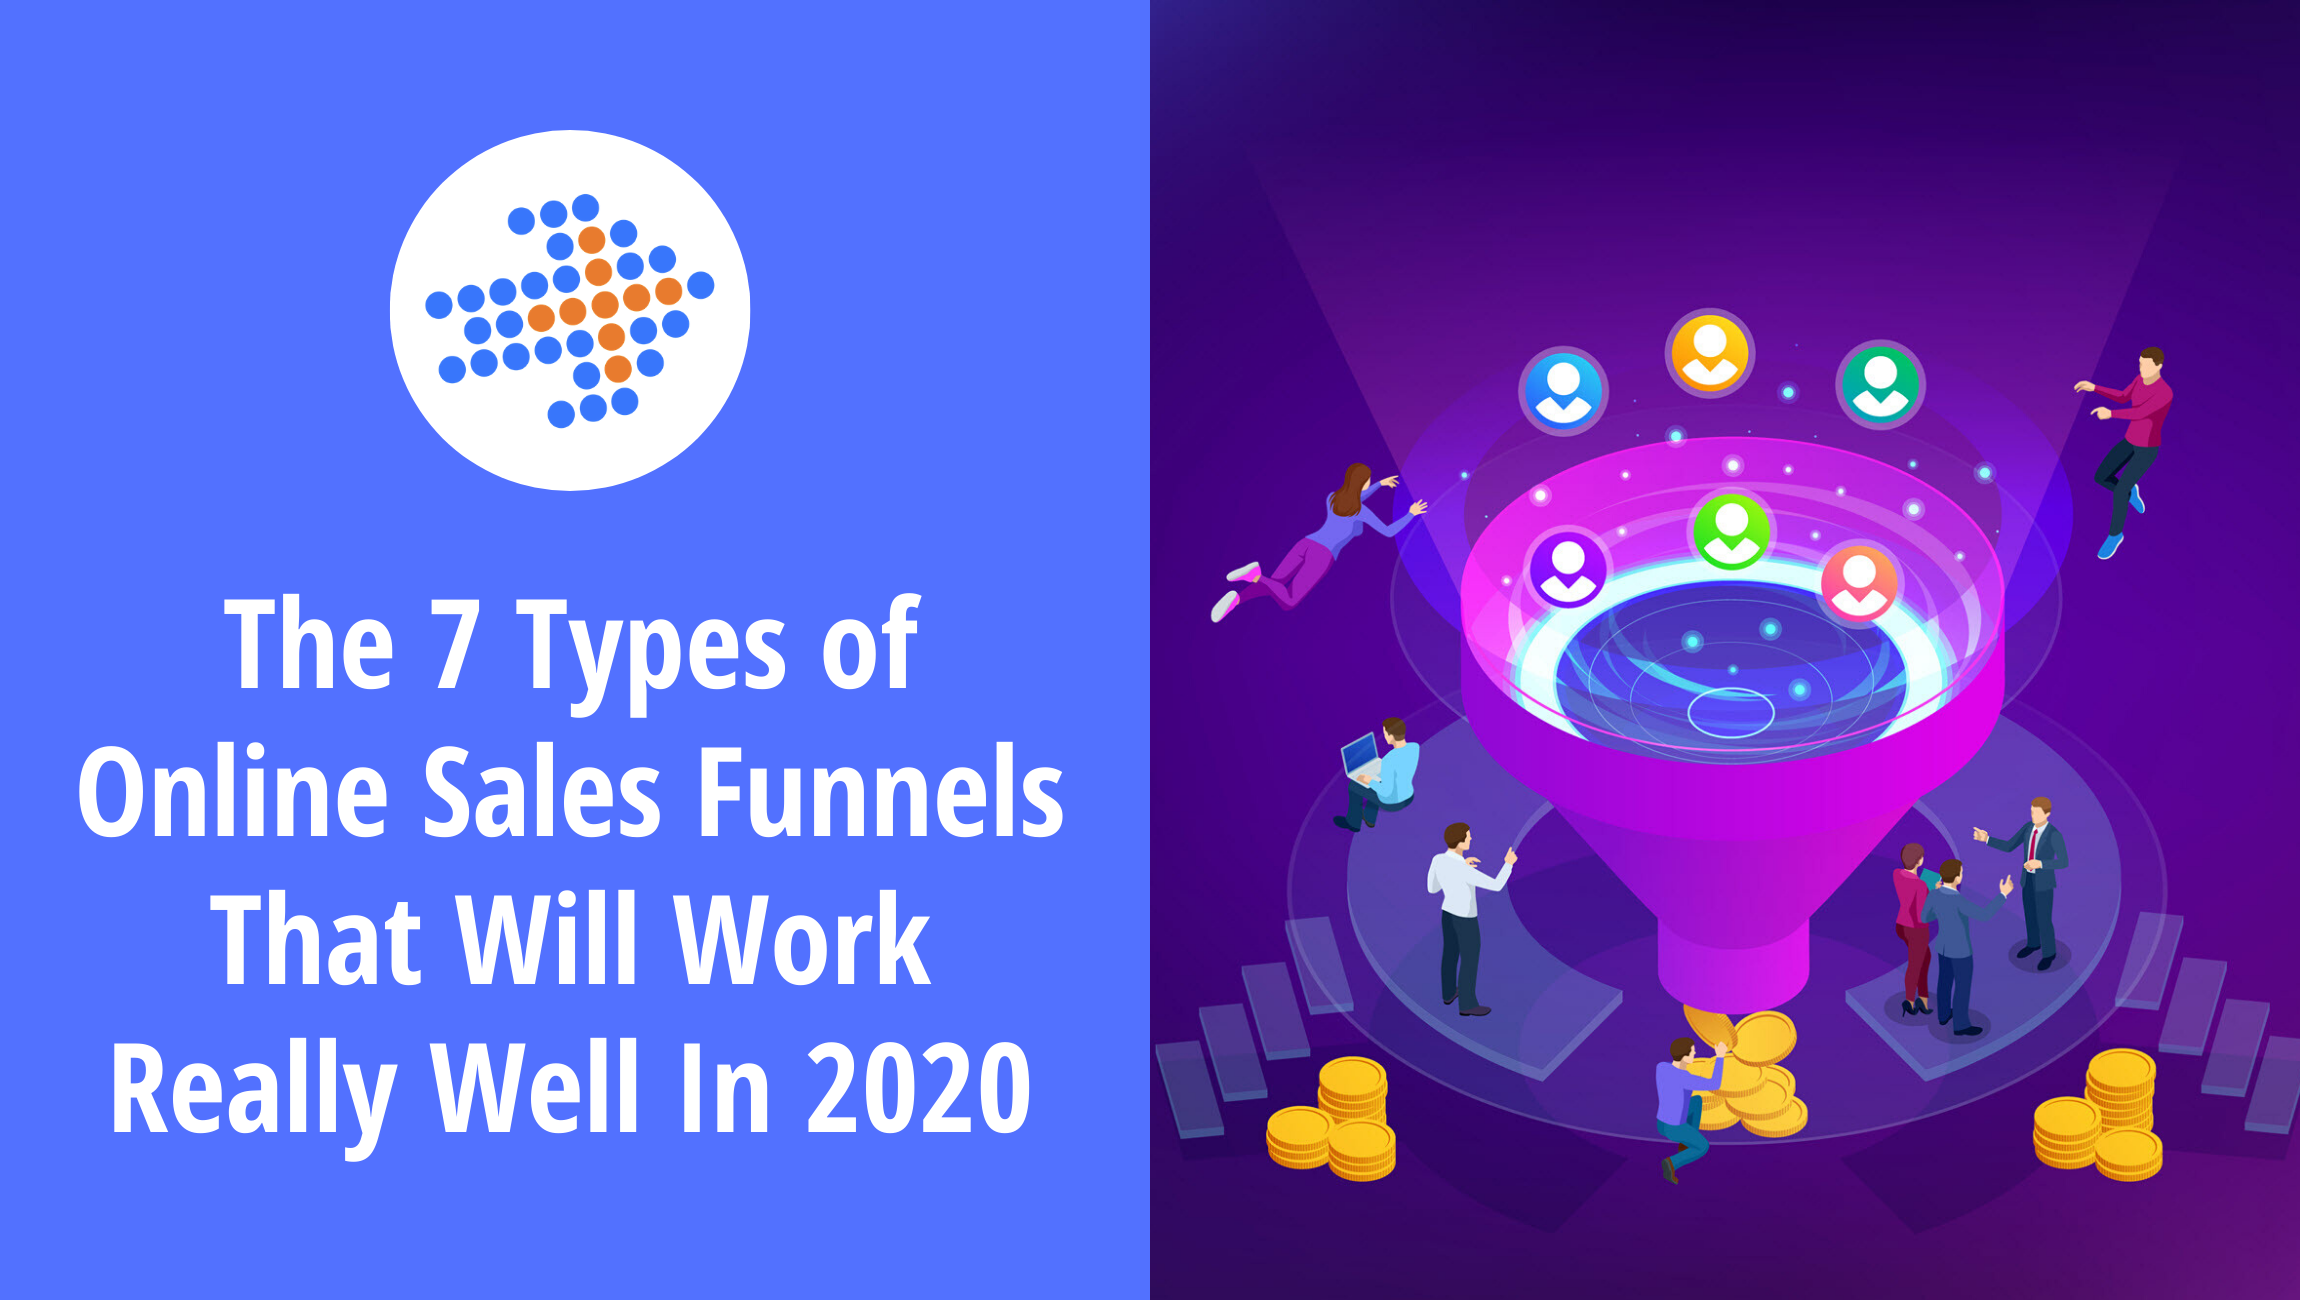 The 7 Types of Online Sales Funnels That Will Work Really Well In 2020